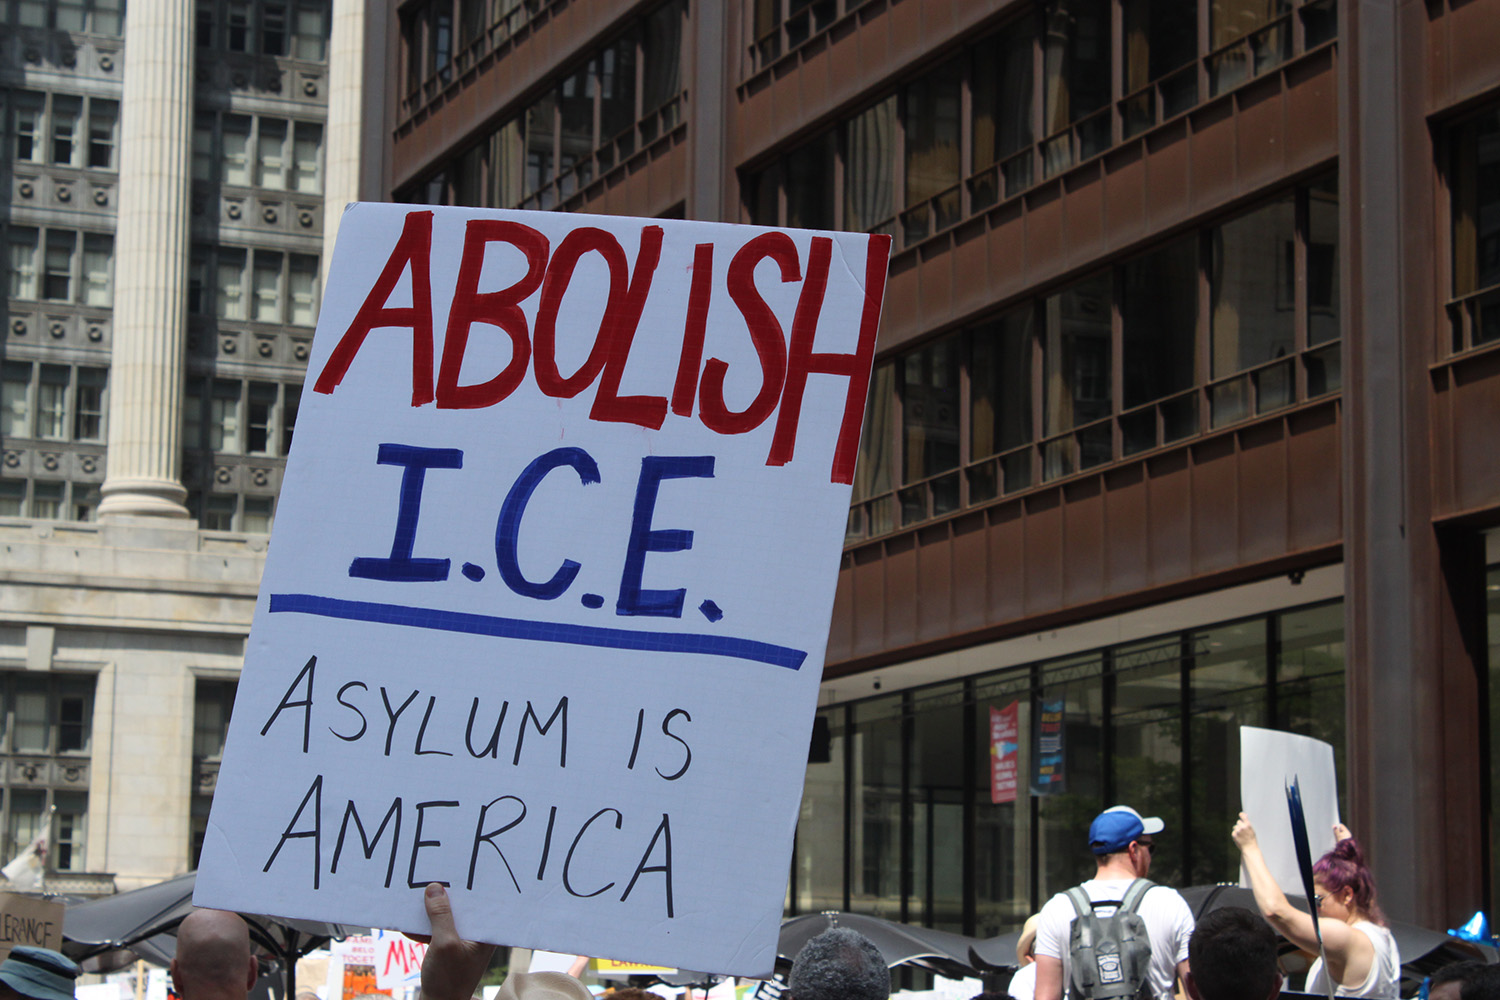 A protester holds up a sign calling for the abolition of Immigration and Customs Enforcement at a demonstration in Chicago on June 30, 2018. Will Racke/TheDCNF